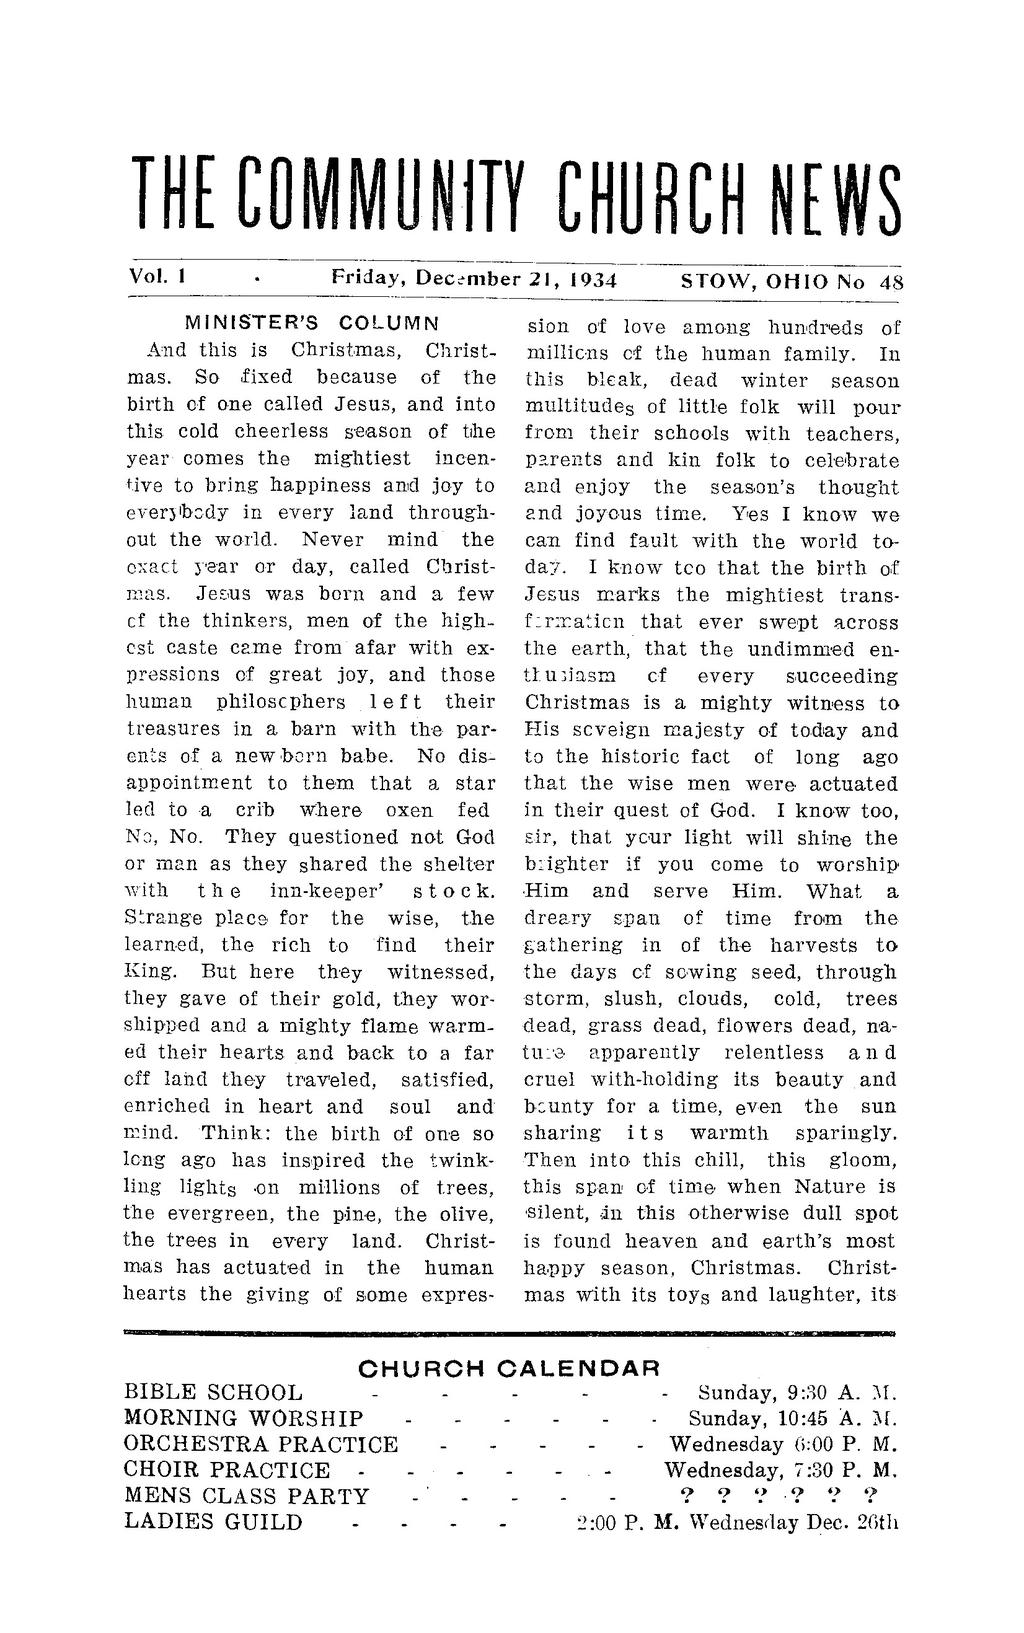 THE COMMUNITY CHURCH NEWS Vol.1 Friday, December 21, 1934 STOW, OHIO No 48 MINISTER'S COLUMN And this is Christmas, Christmas.